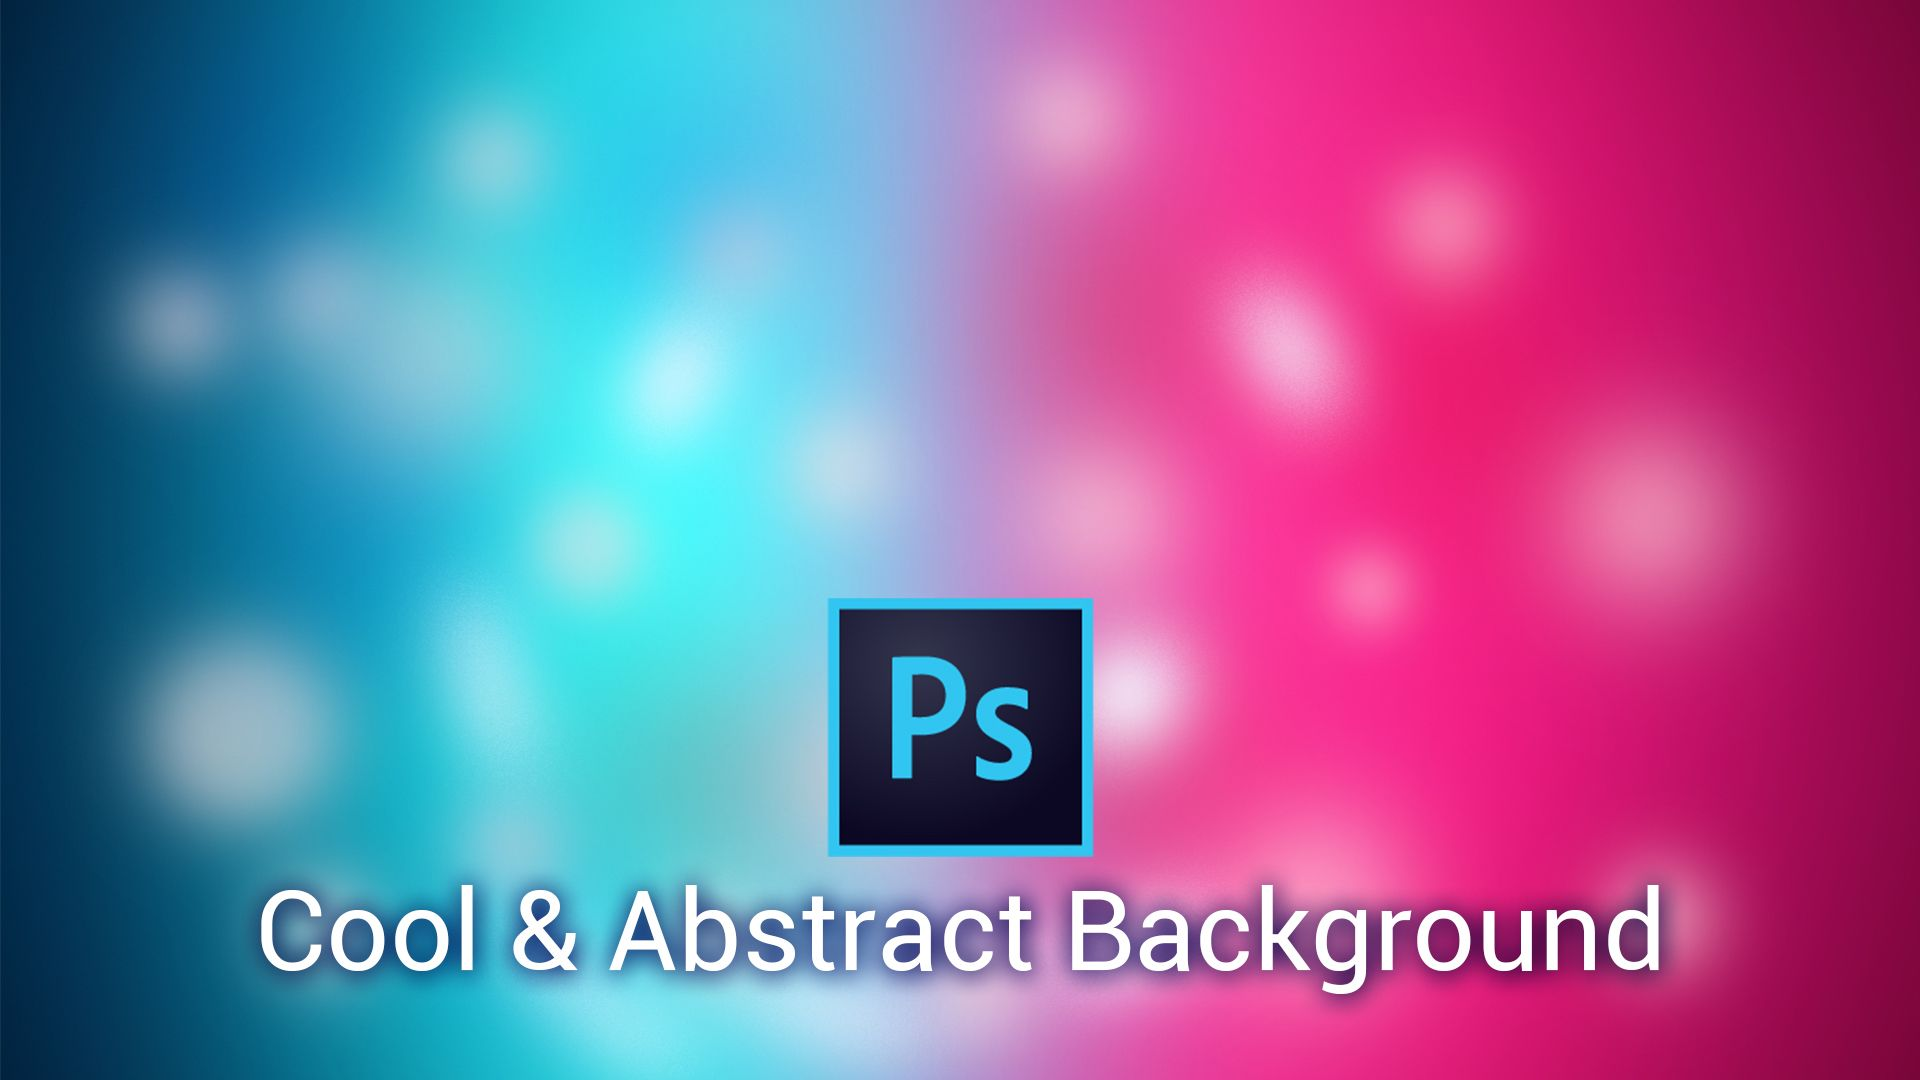 Photoshop Cool Background Tutorial How To Make A Cool Blur Background Discover How To Make A Ba Easy Photoshop Tutorials Cool Backgrounds Photoshop Tutorial